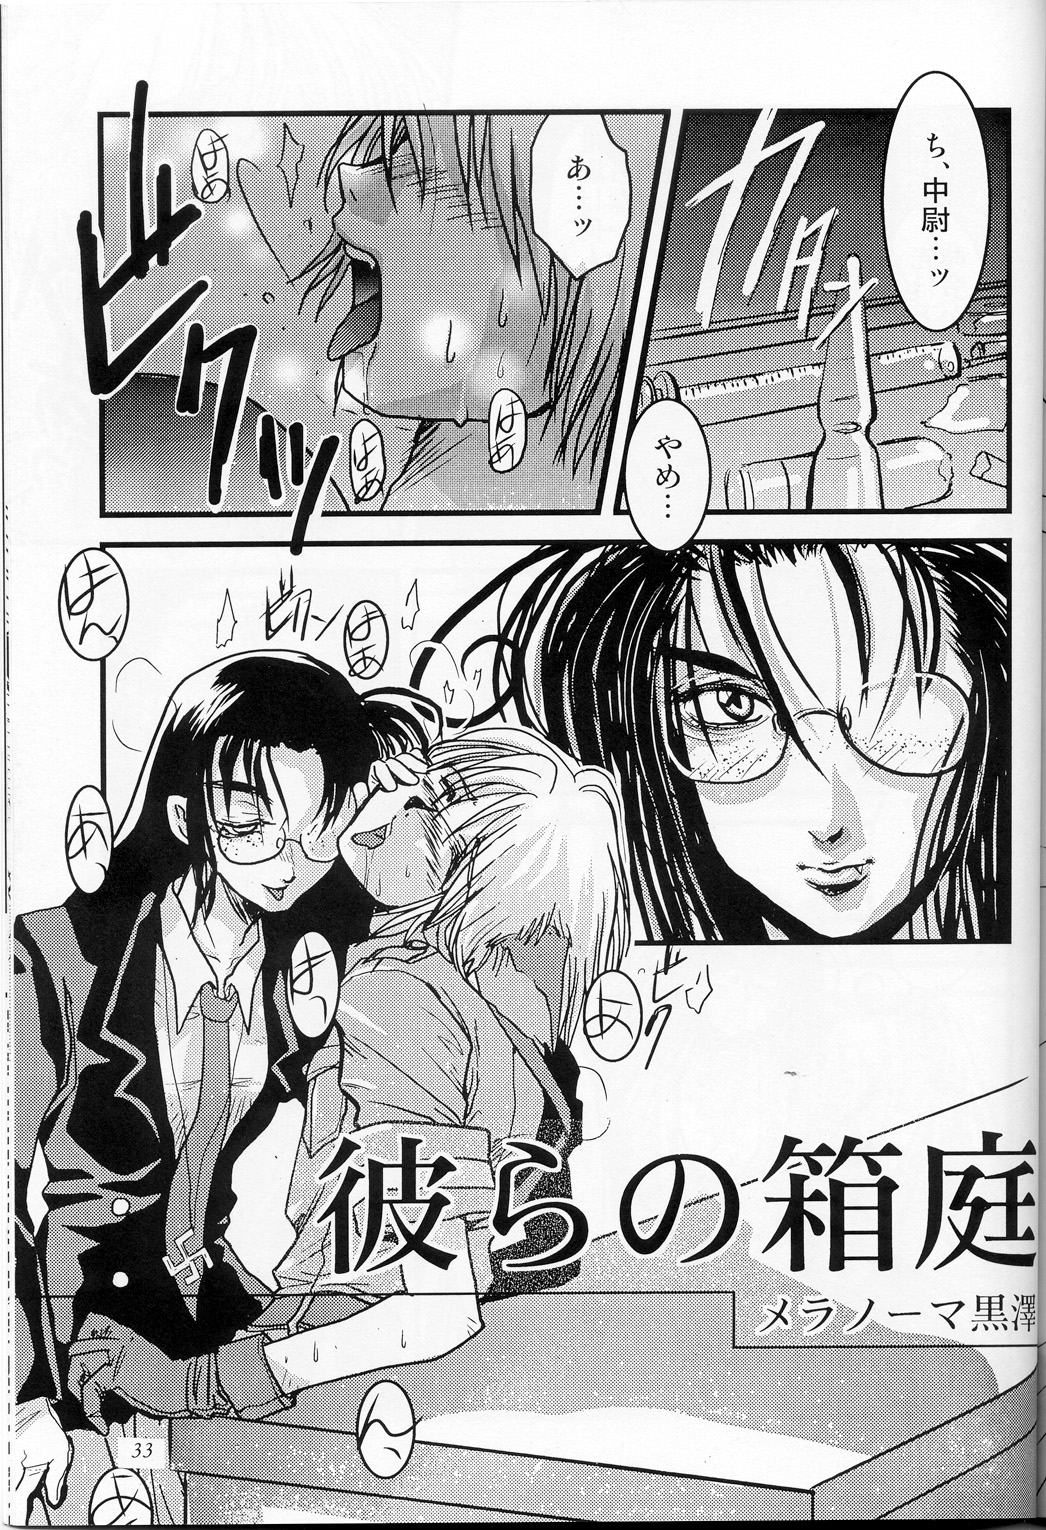 grell rip winkle hellsing and van You're a third rate duelist with a fourth rate deck